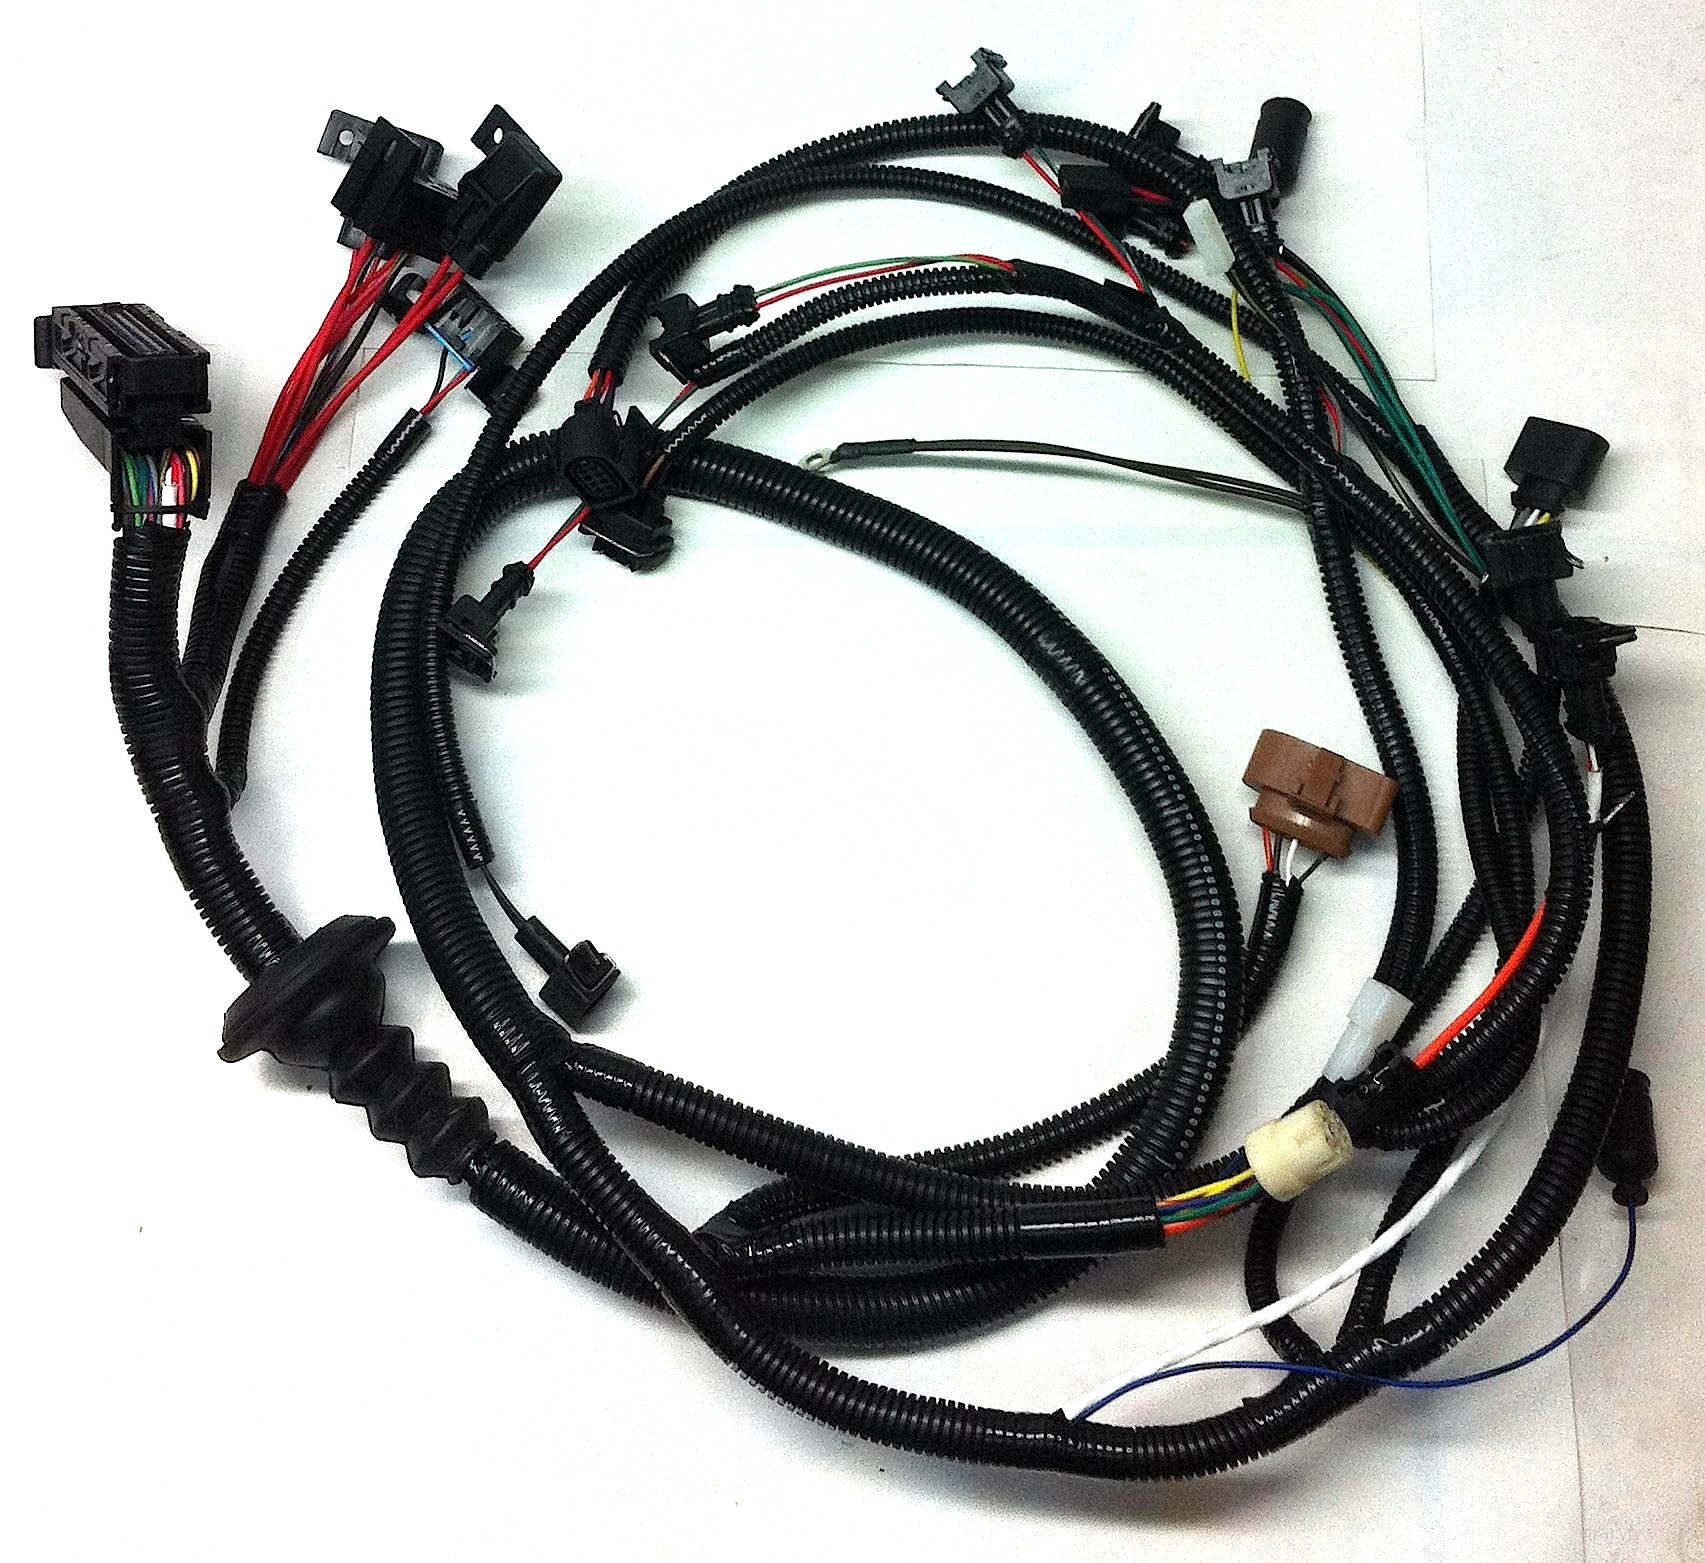 Wiring_Harness_2LR 2lr tiico conversion wiring harness foreign auto & supply, inc tdi swap wiring harness at edmiracle.co